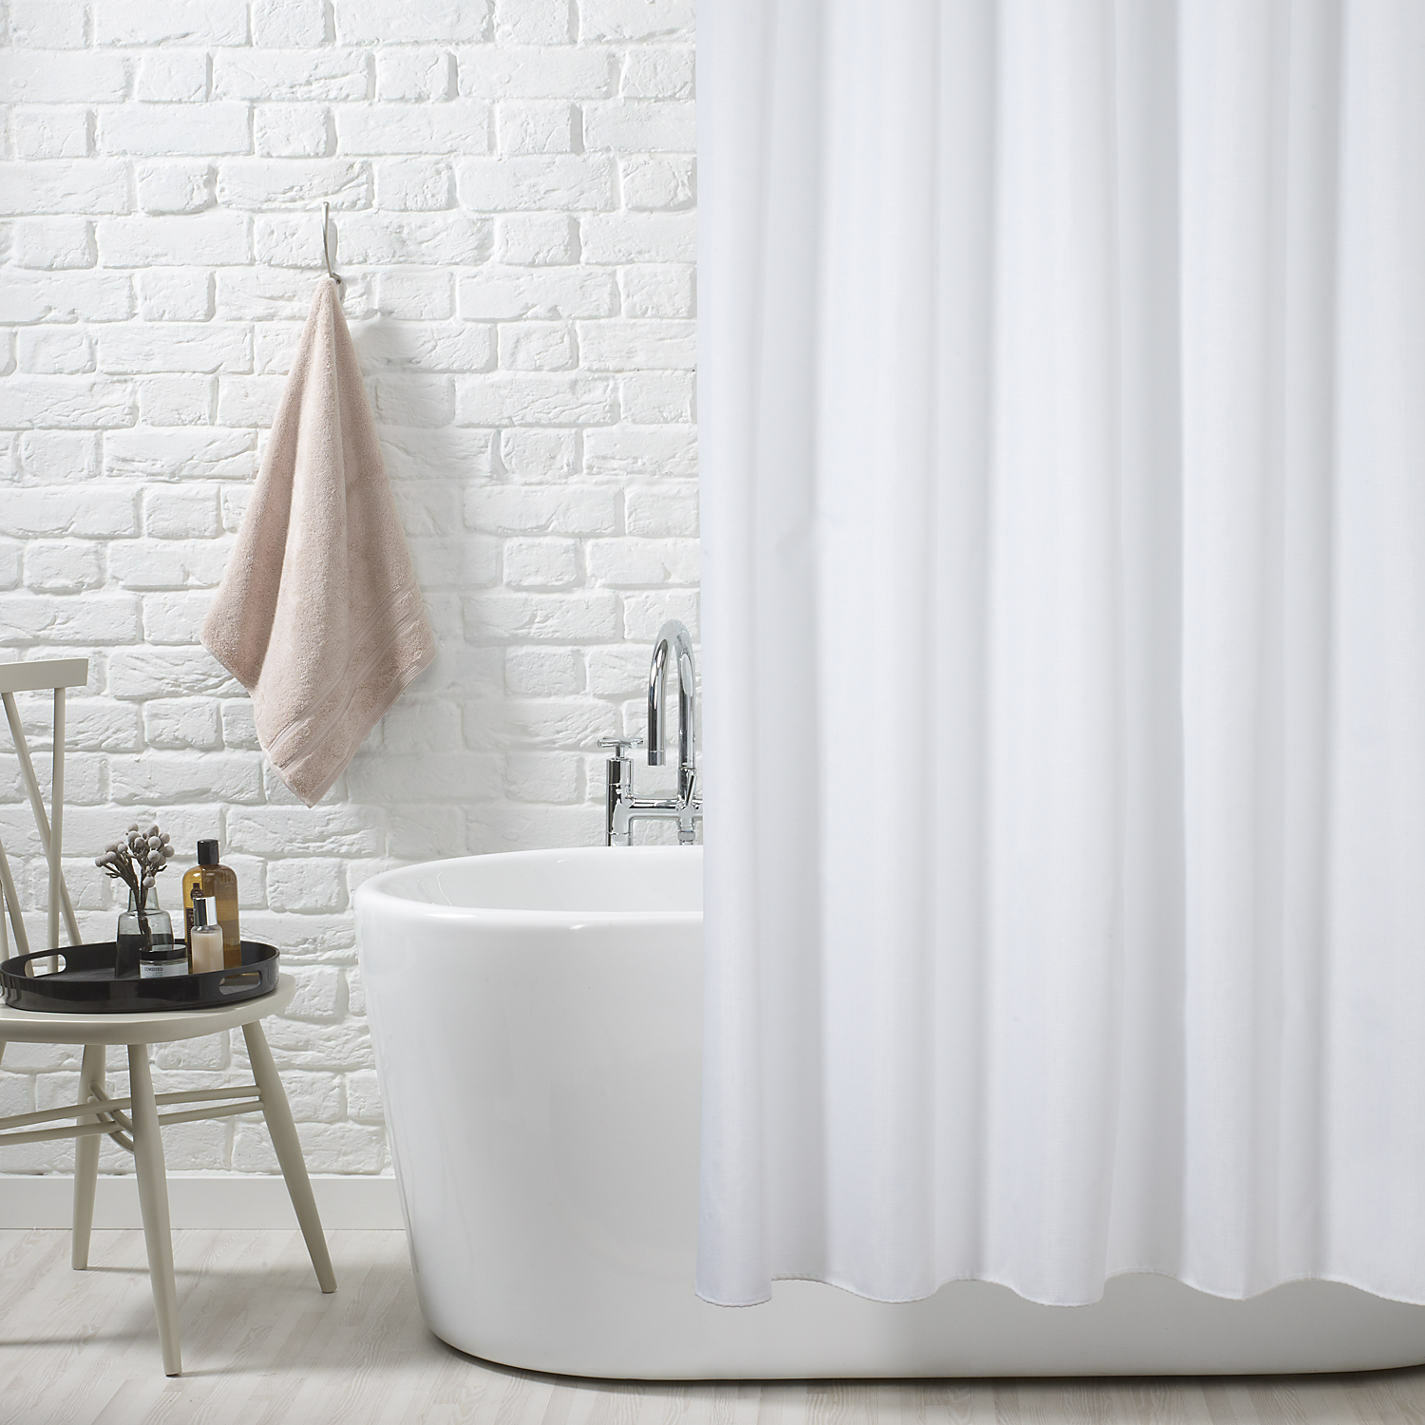 180 X 210cm WHITE POLYESTER SHOWER CURTAIN STANDARD SIZE